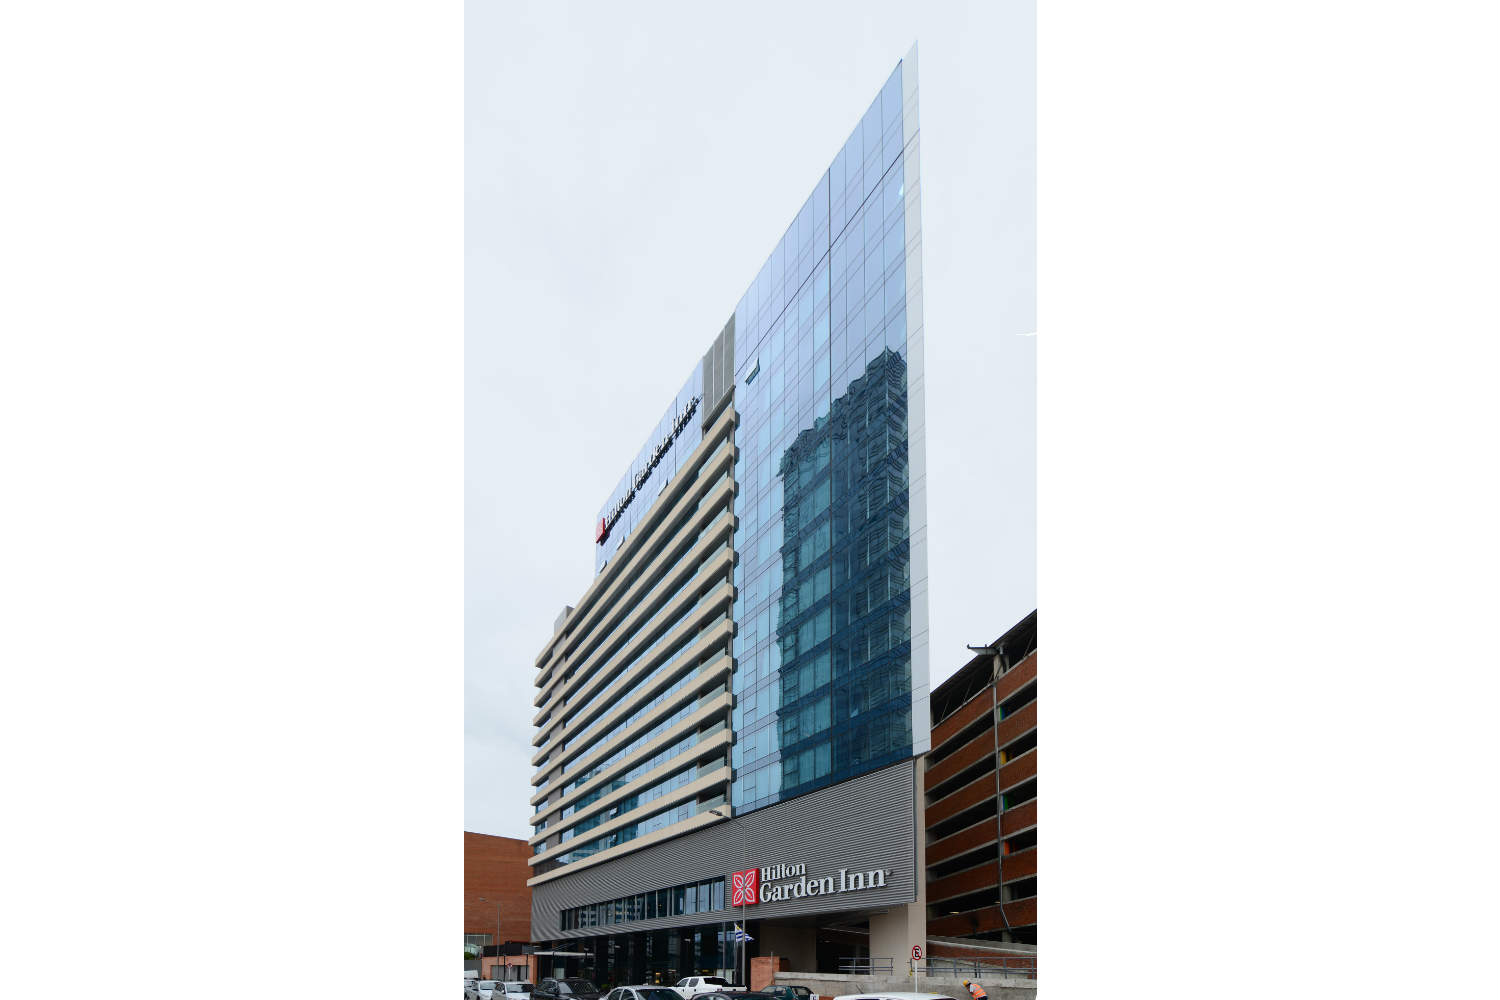 Hilton Garden Inn in Montevideo, Uruguay. Invisible acoustics designed and install by WSDG - WSDG Latin, Sergio Molho and Silvia Molho. Façade 1